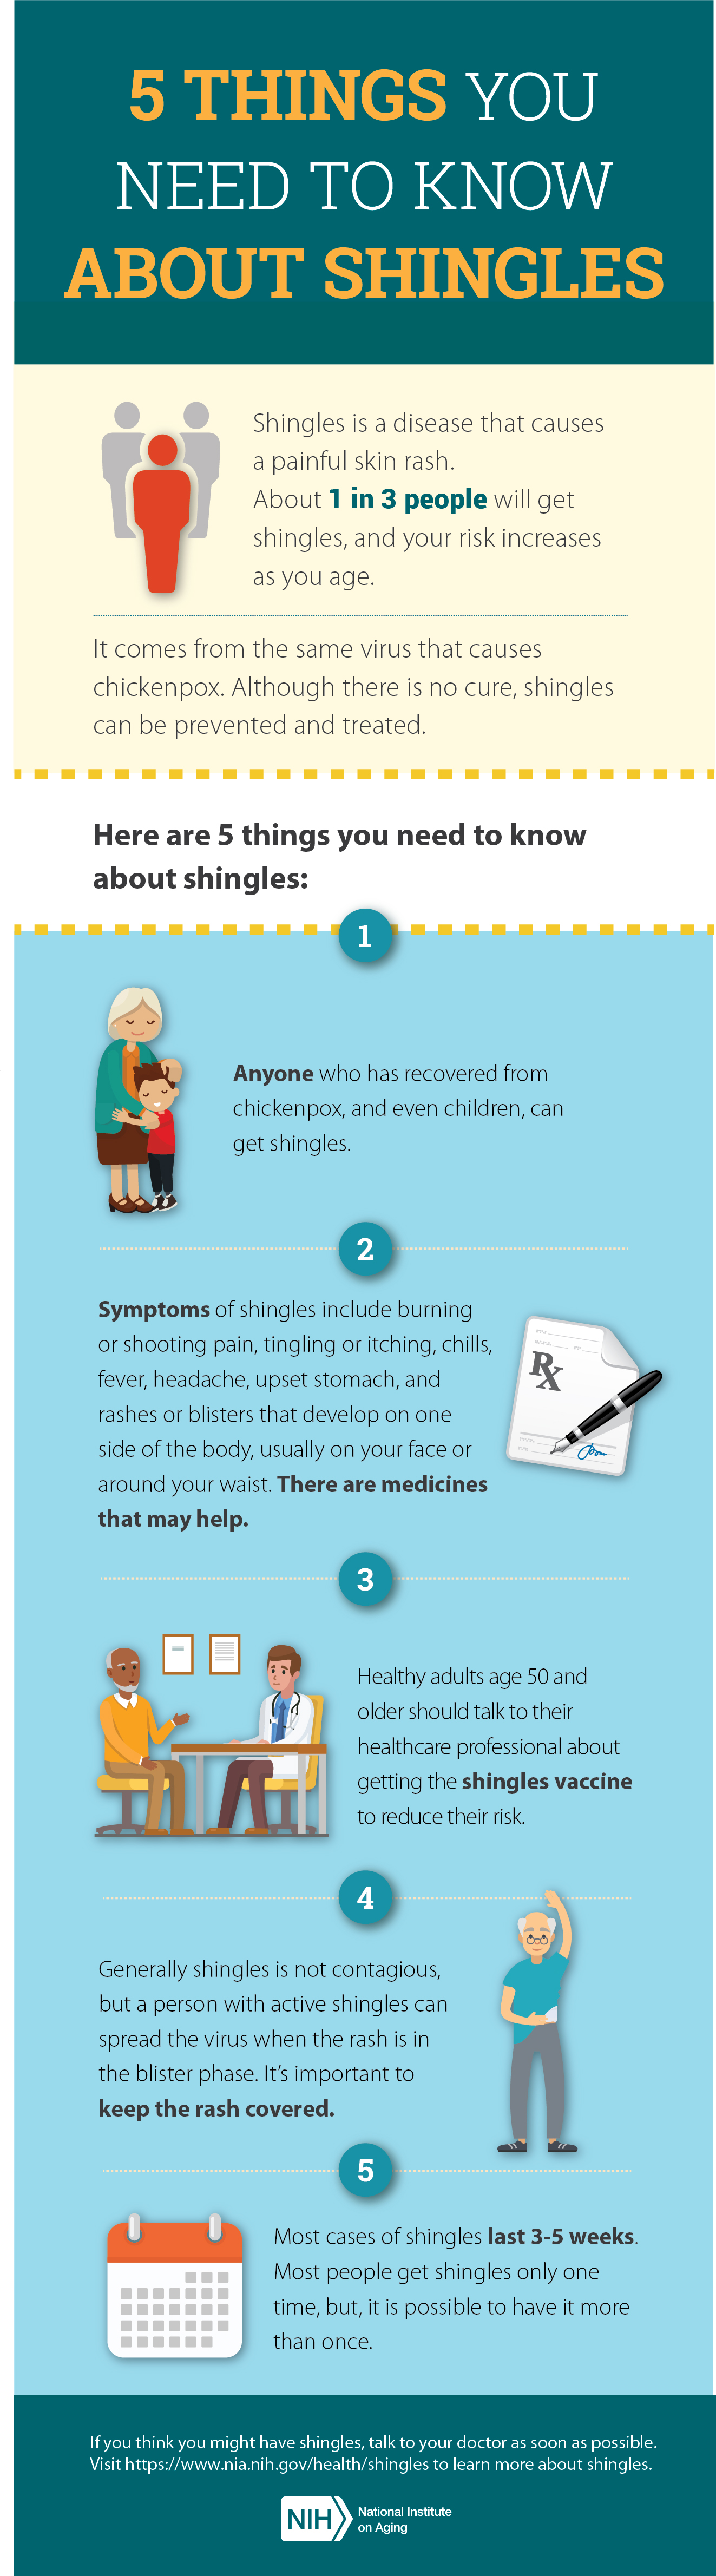 5 things you need to know about shingles. 1) Anyone who has recovered from chickenpox can get it. 2) Symptoms include pain, tingling/itching, chills, fever, headache, rashes/blisters on one side of body. Meds can help. 3) Adults over 50 should get vaccinated. 4) Cover the rash in blister phase. 5) Most cases last 3-5 weeks.